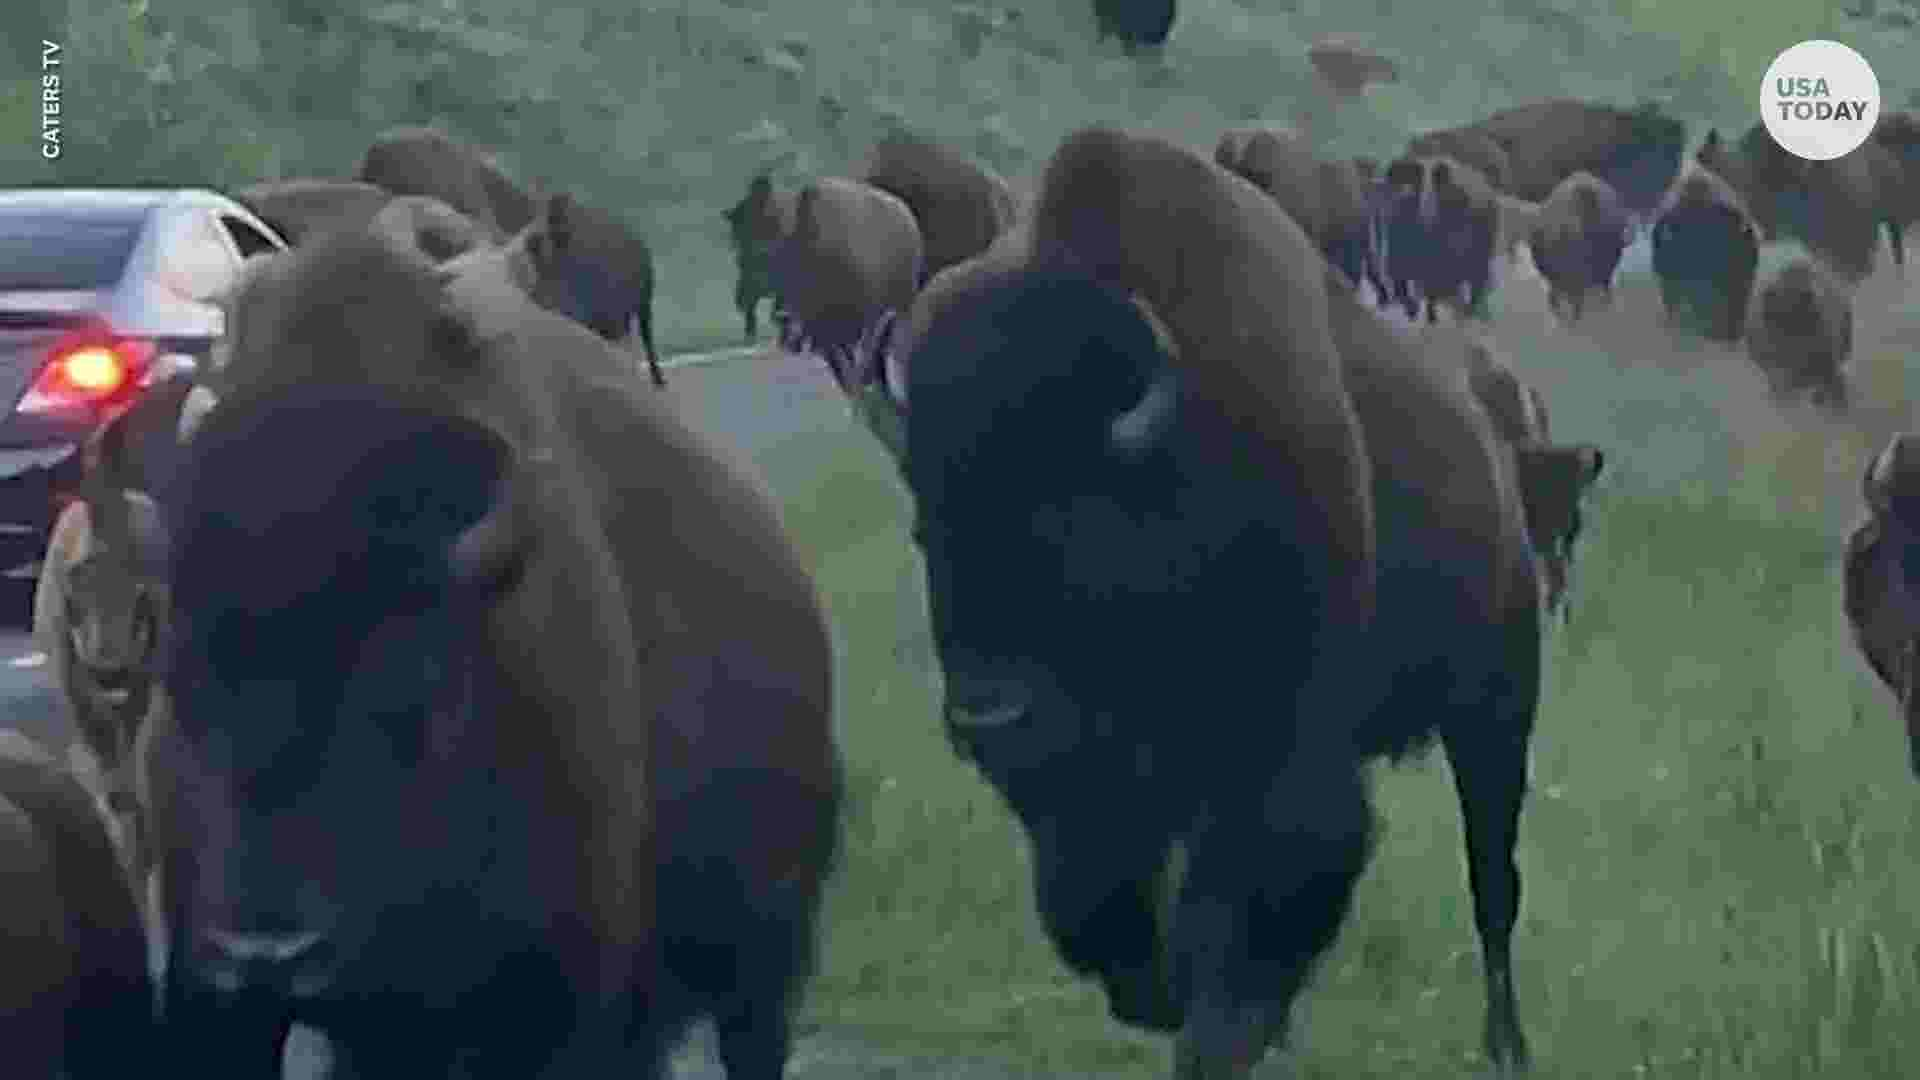 Giant bison slams into car at Yellowstone during stampede